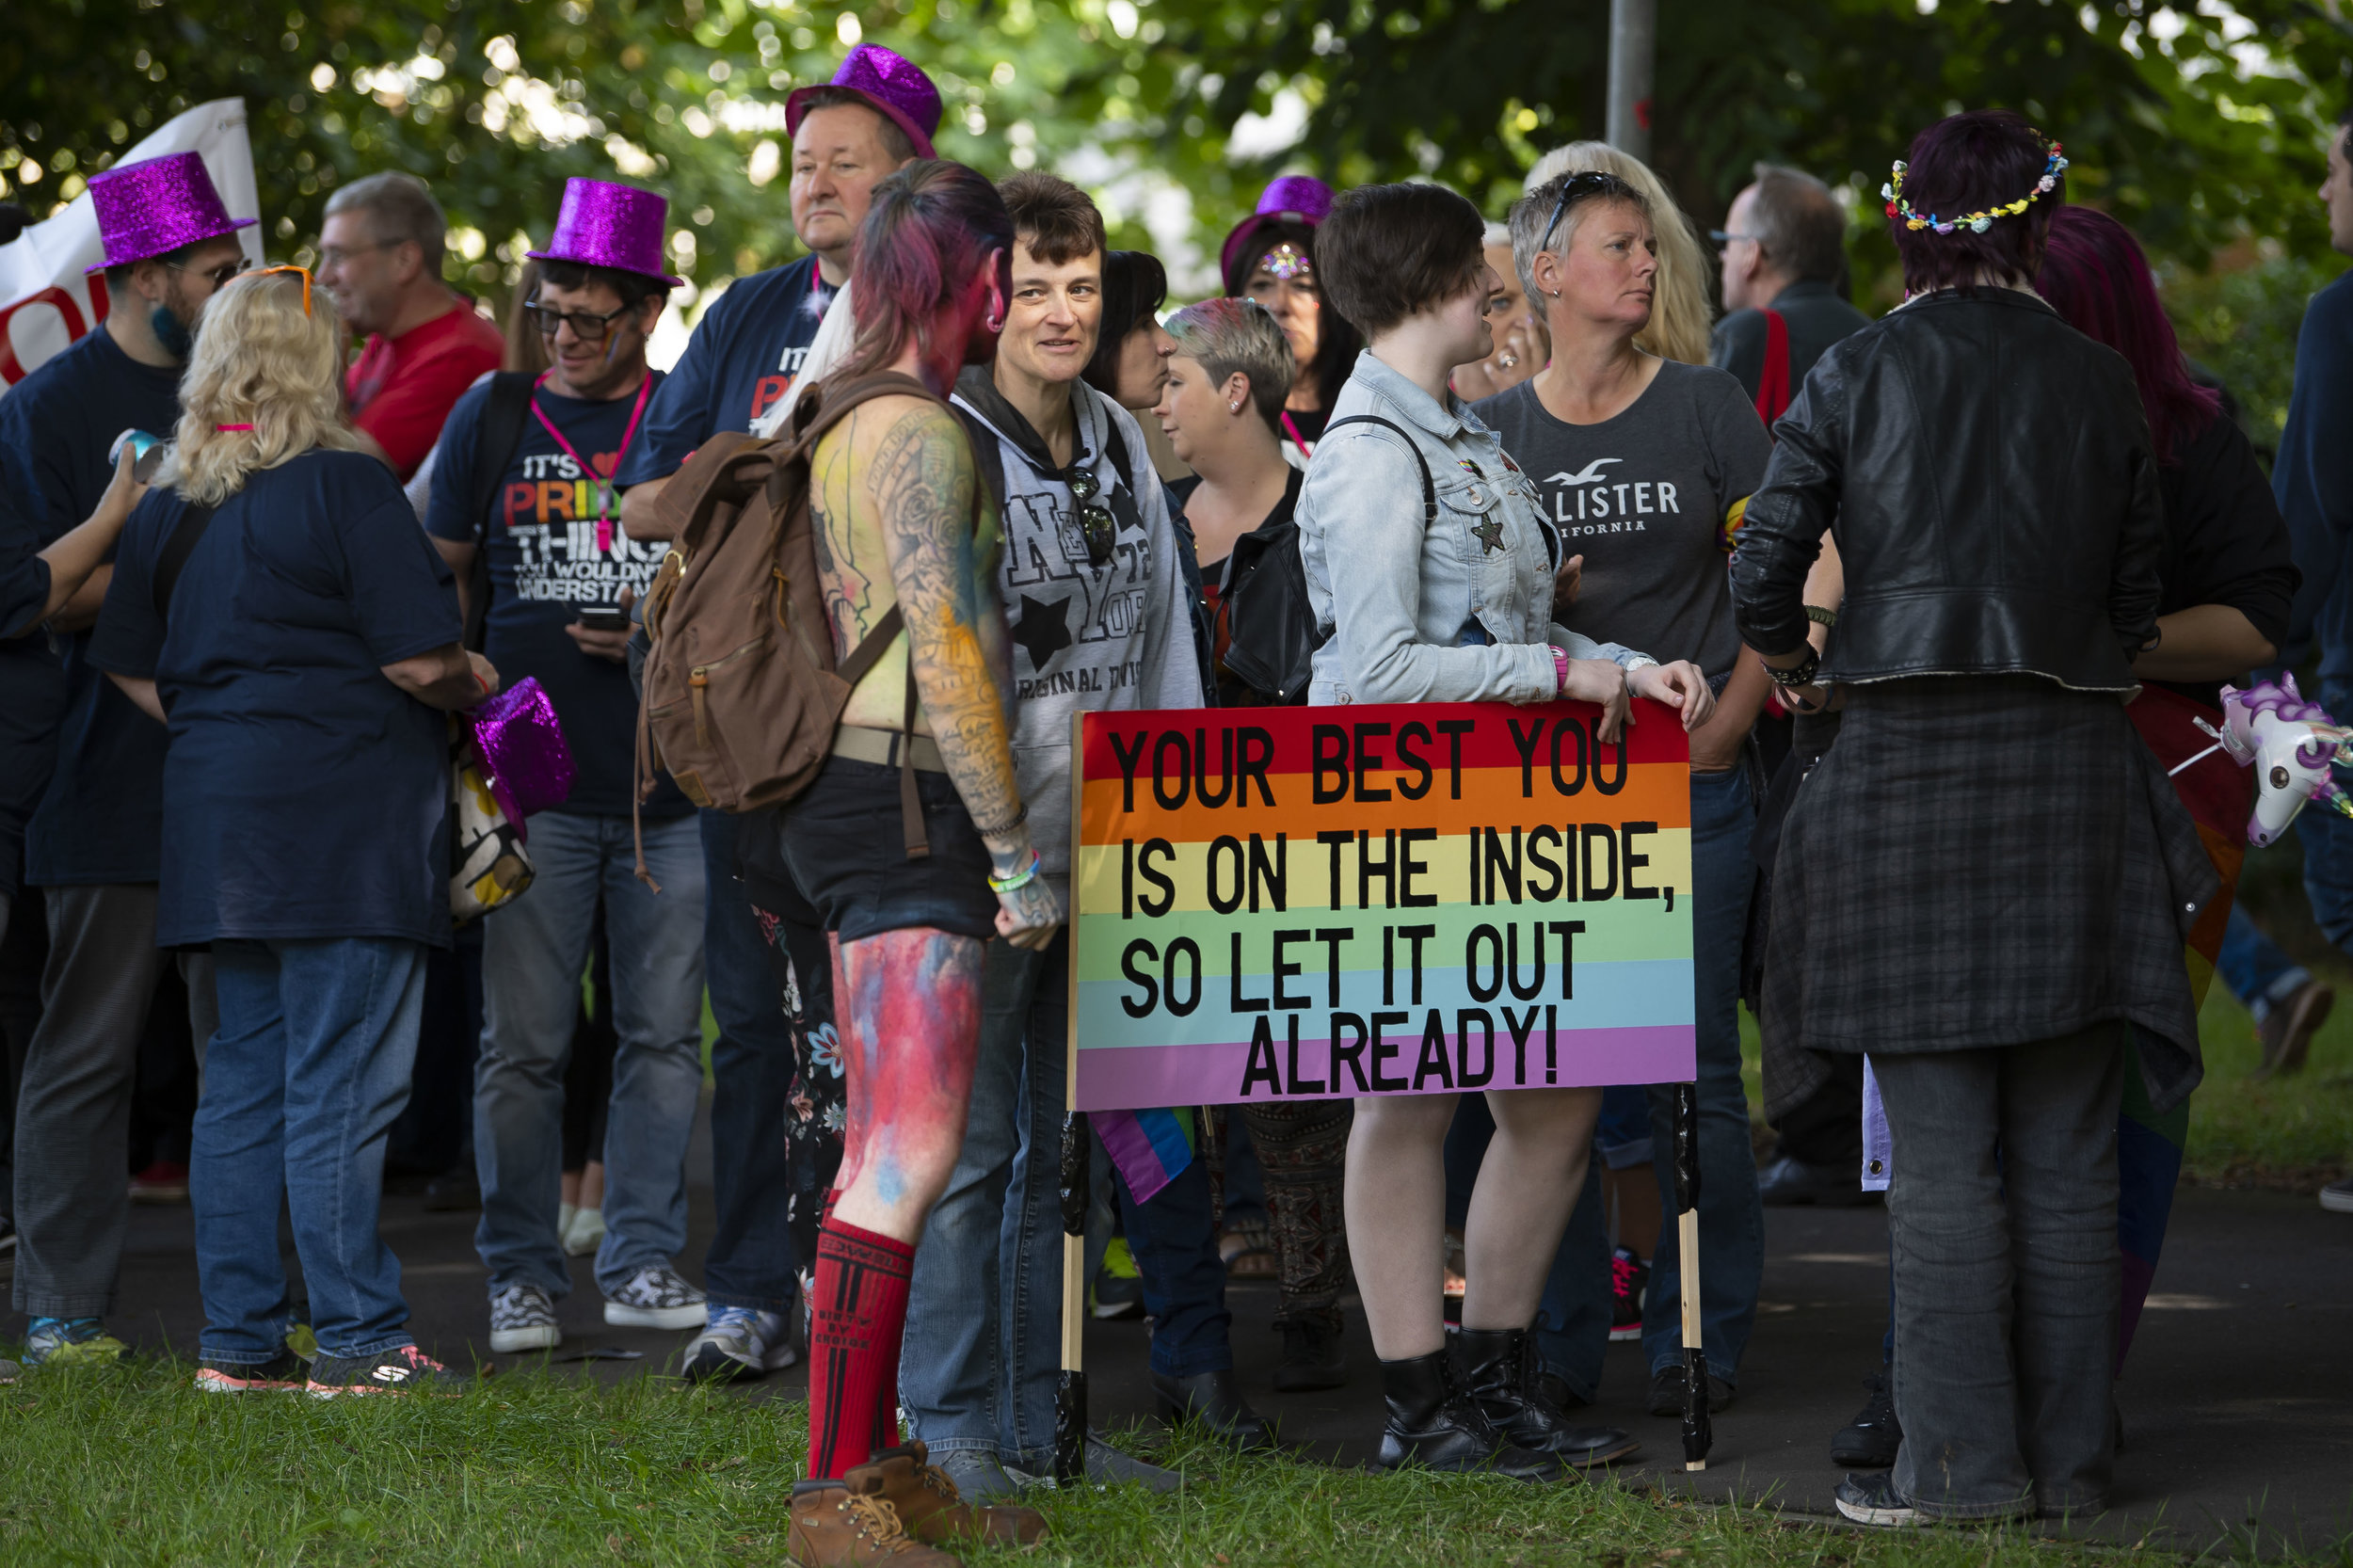 CARDIFF, WALES - AUGUST 25: Pride Cymru parade on August 25, 2018 in Cardiff, Wales. Pride Cymru aims to eliminate discrimination on the grounds of sexual orientation and gender within Wales. (Photo by Matthew Horwood/Getty Images)